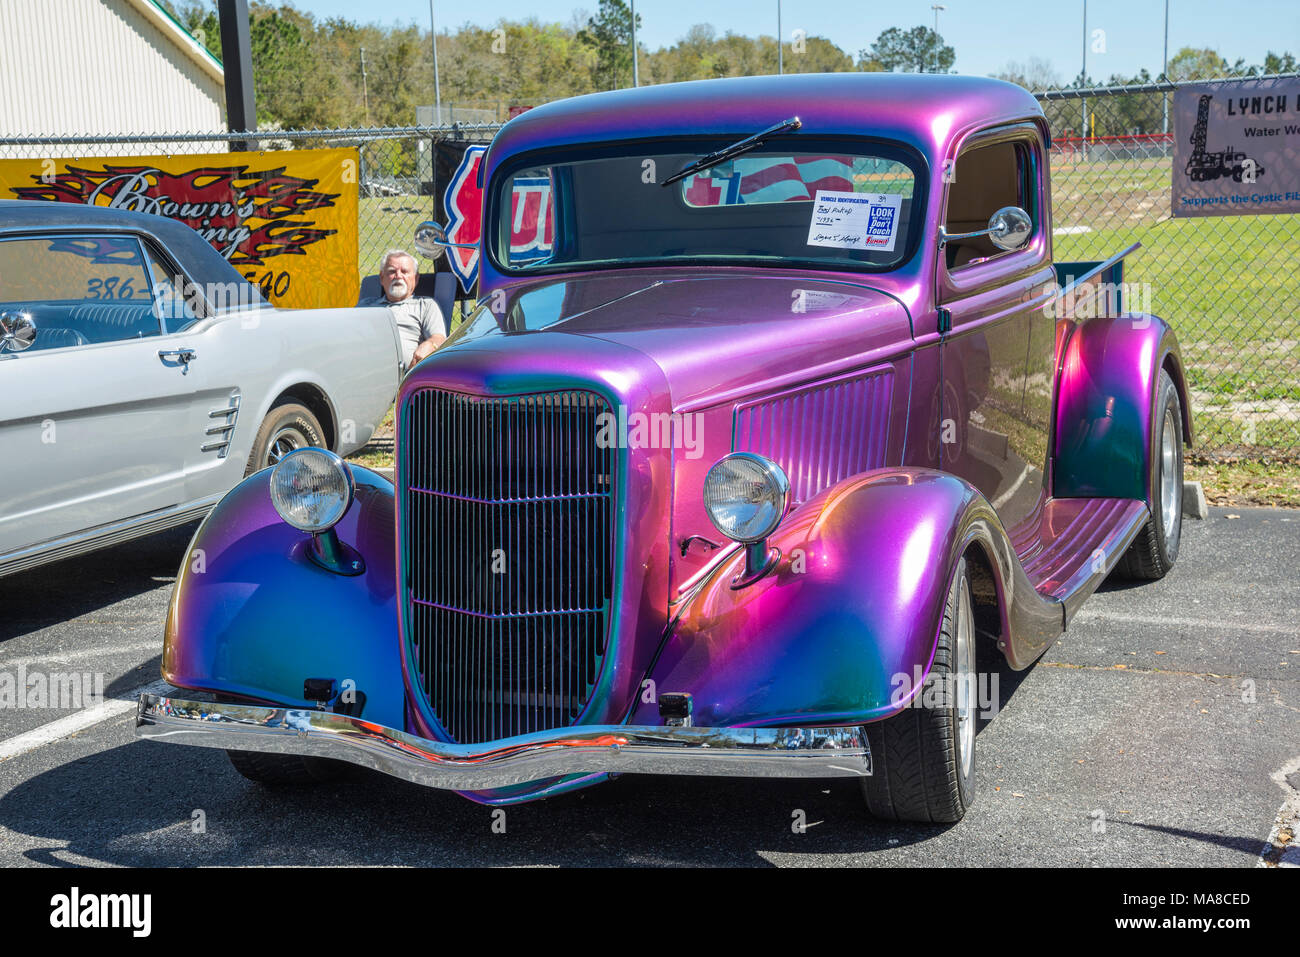 Car Show in Ft. White, Florida Stock Photo: 178435669 - Alamy